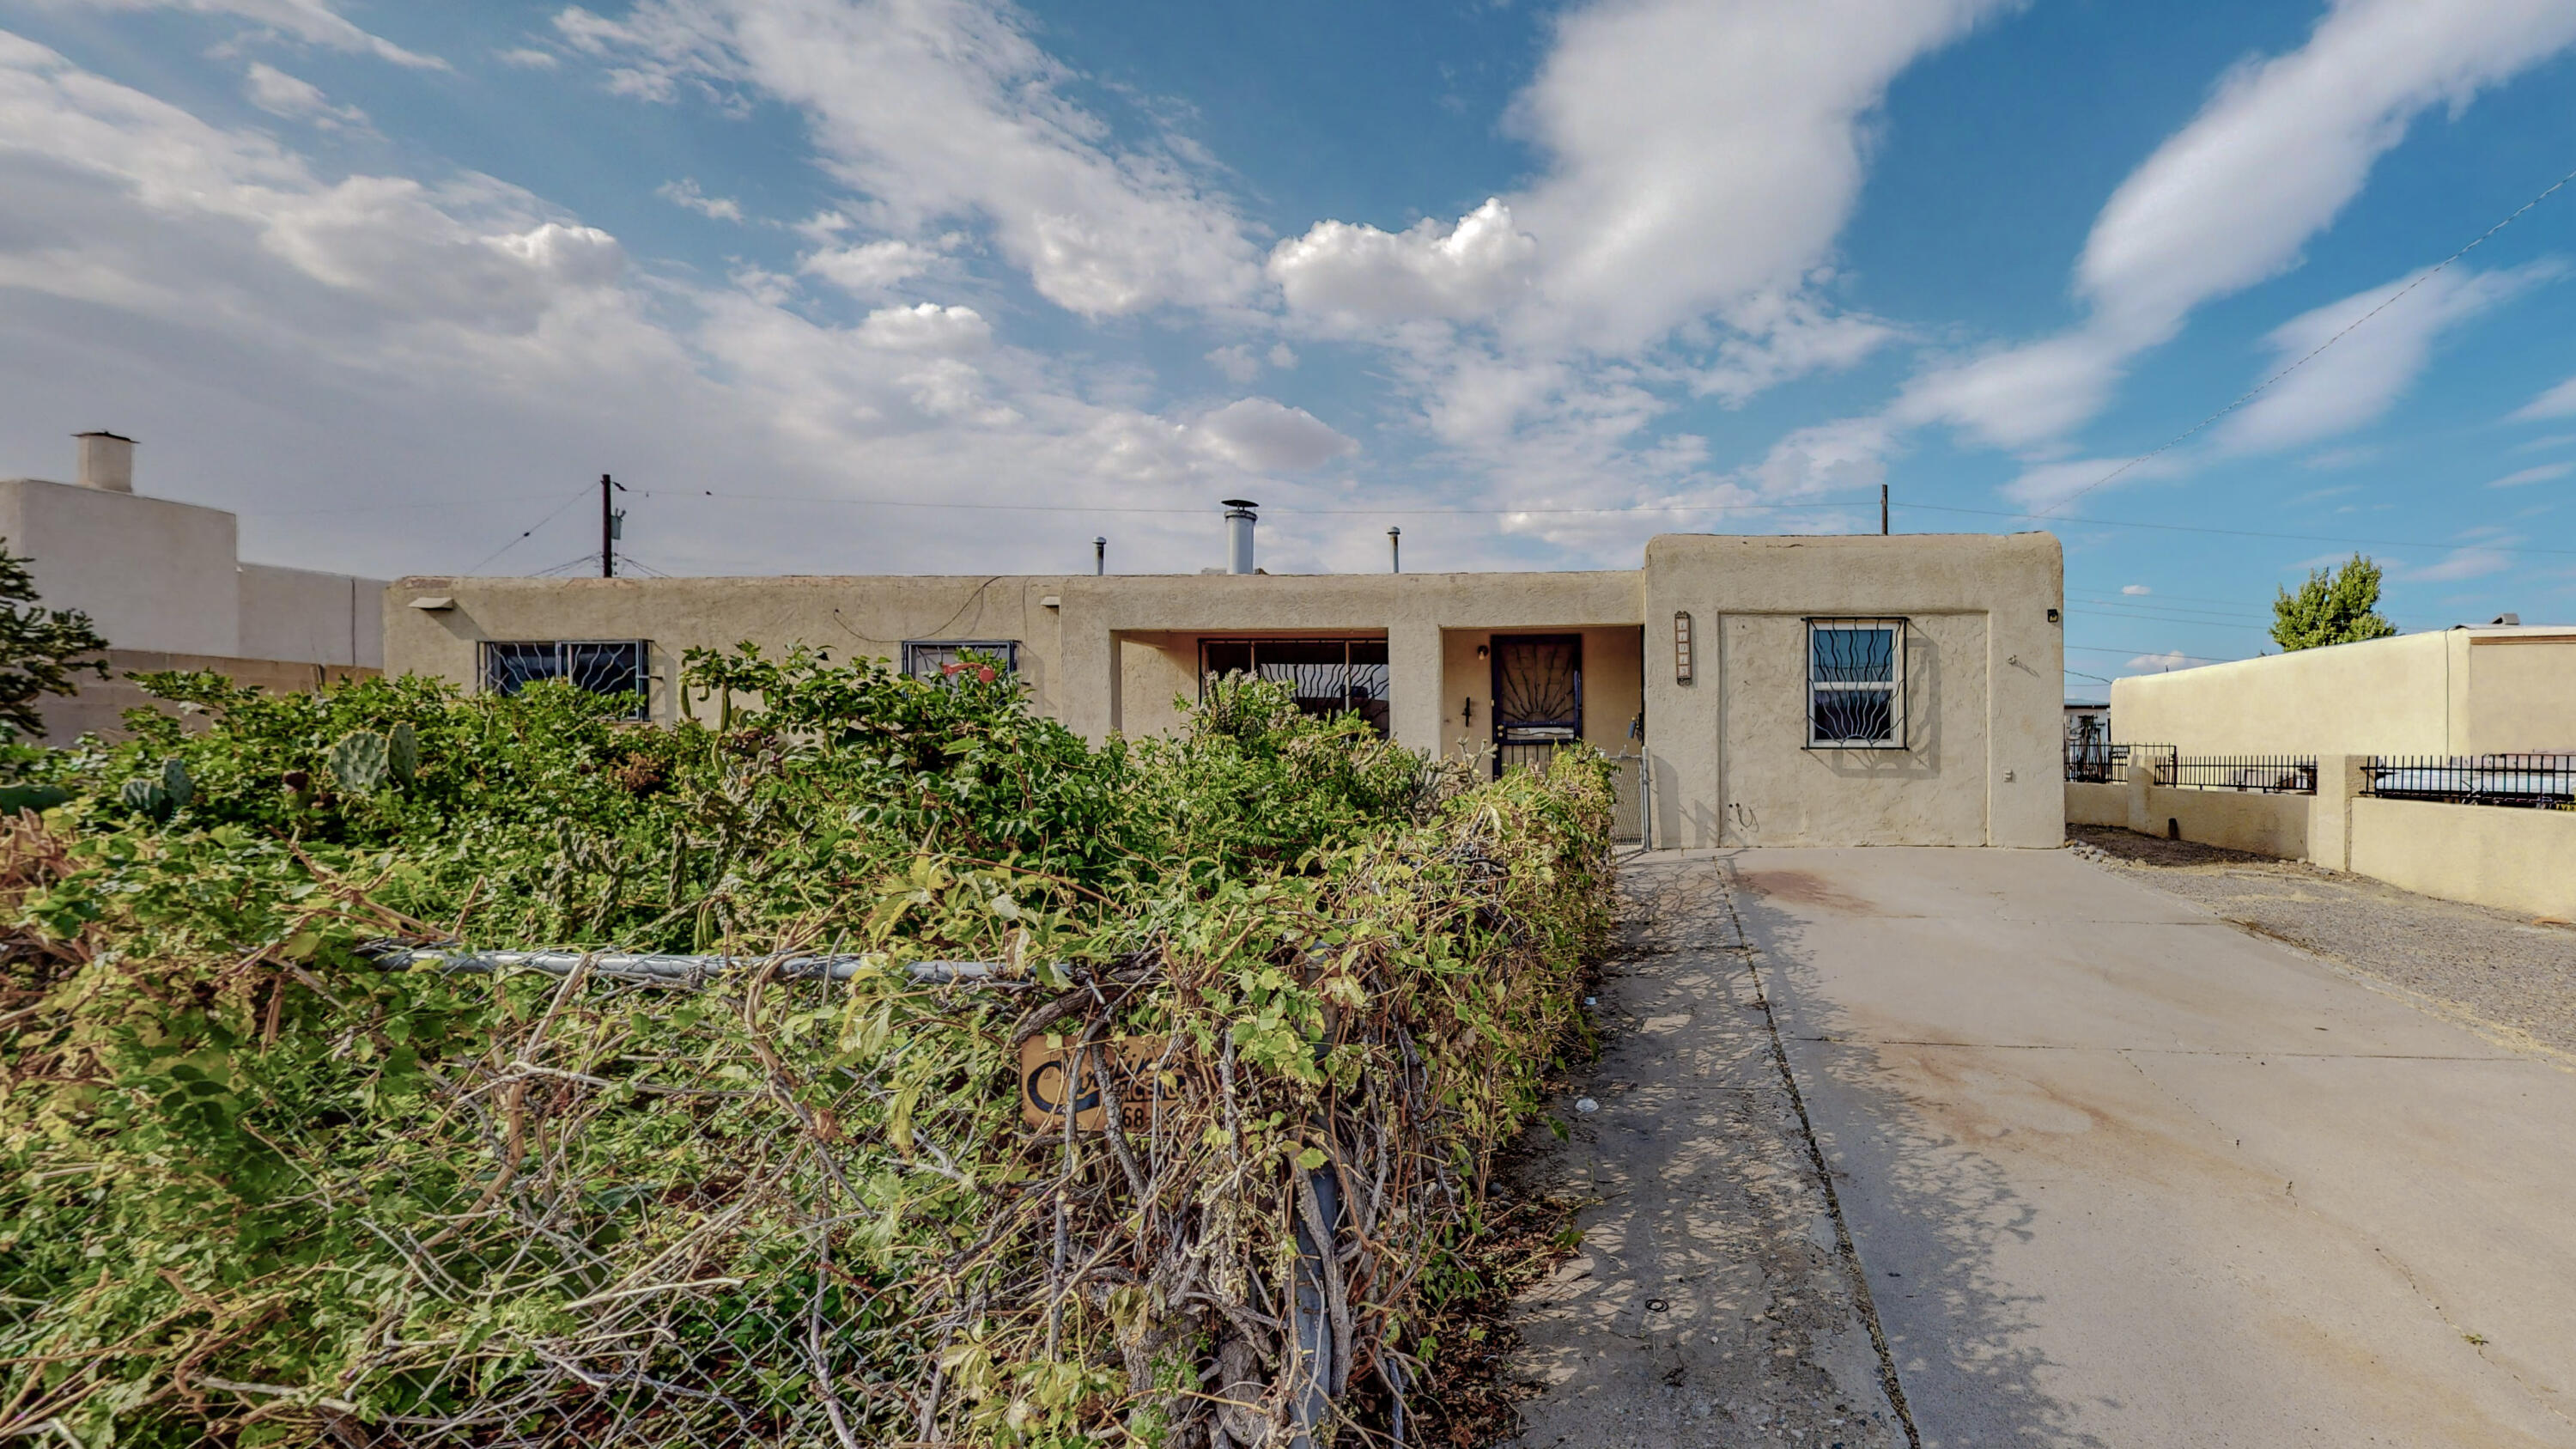 INVESTORS SPECIAL!!! This property is located in Westgate Heights and is being sold as is. TONS of great potential for investors to fix up then rent or sell! Conveniently located close to Westgate parks and Carlos Rey Elementary School!